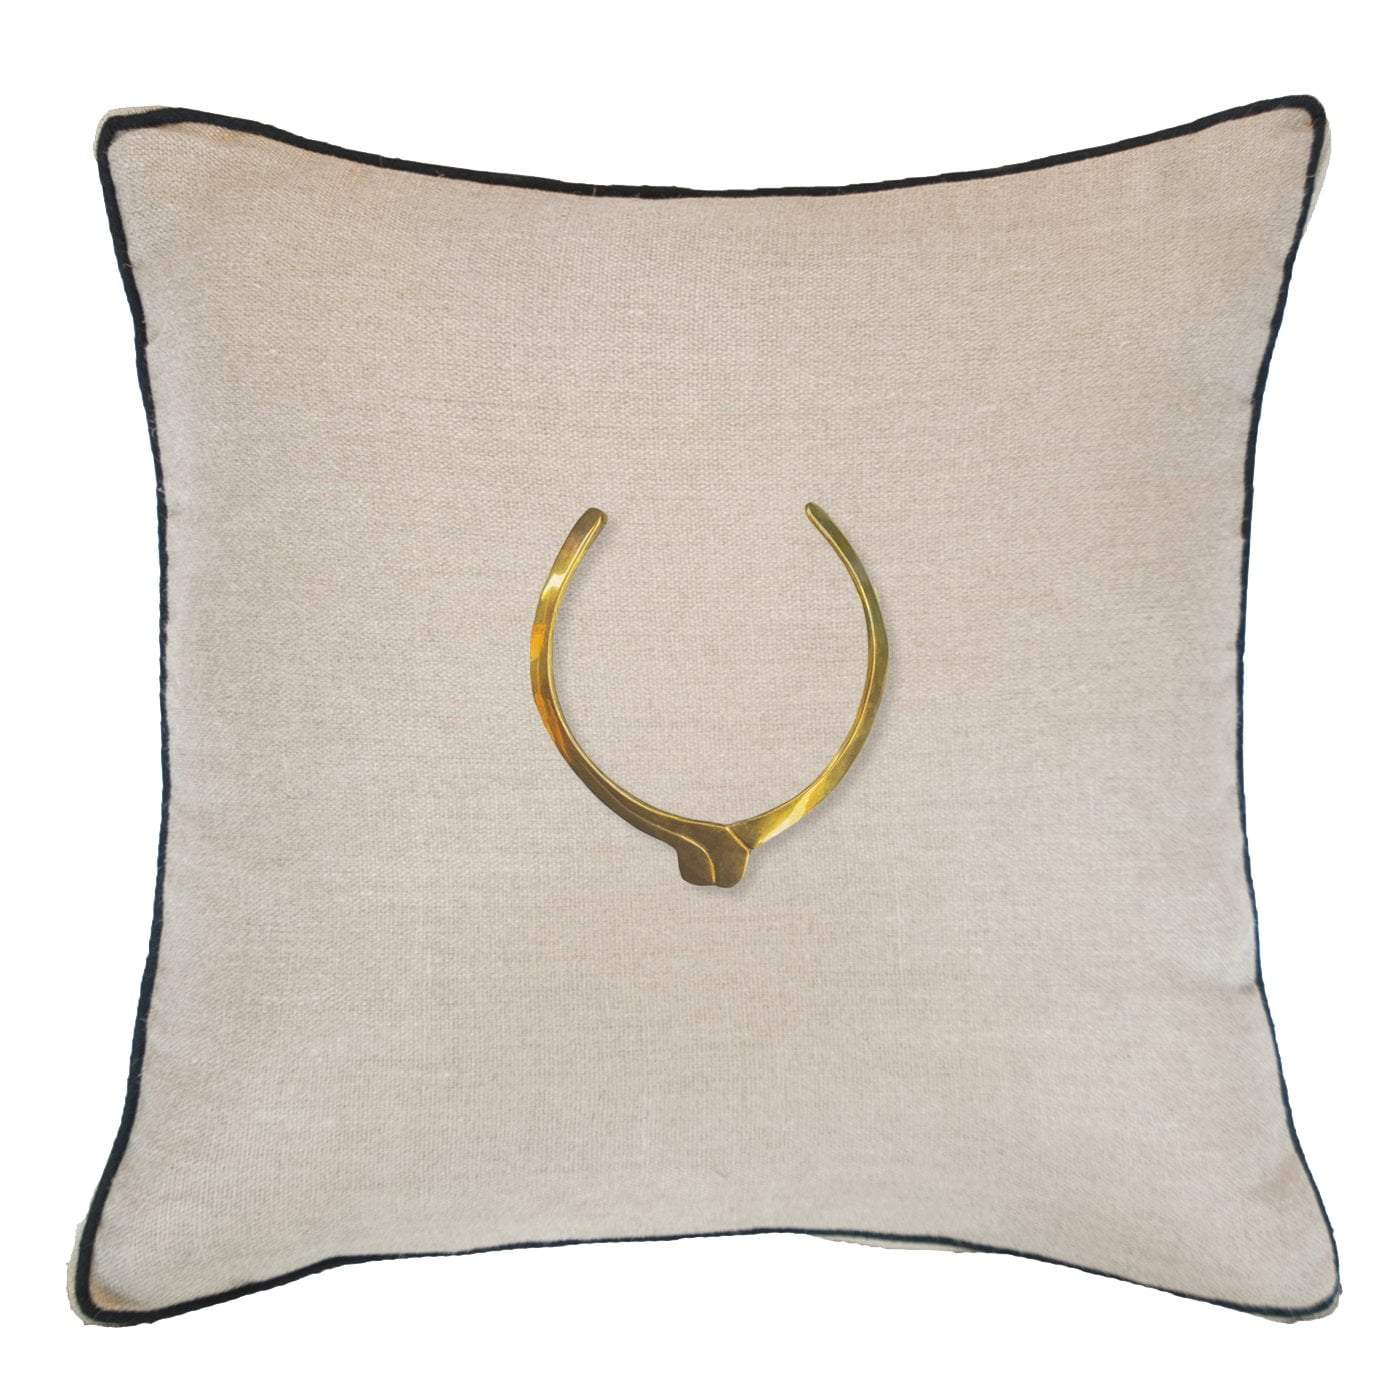 Bandhini Homewear Design Lounge Cushion Natural / 22 x 22 Amulet Egypt Natural Lounge Cushion 55x55cm